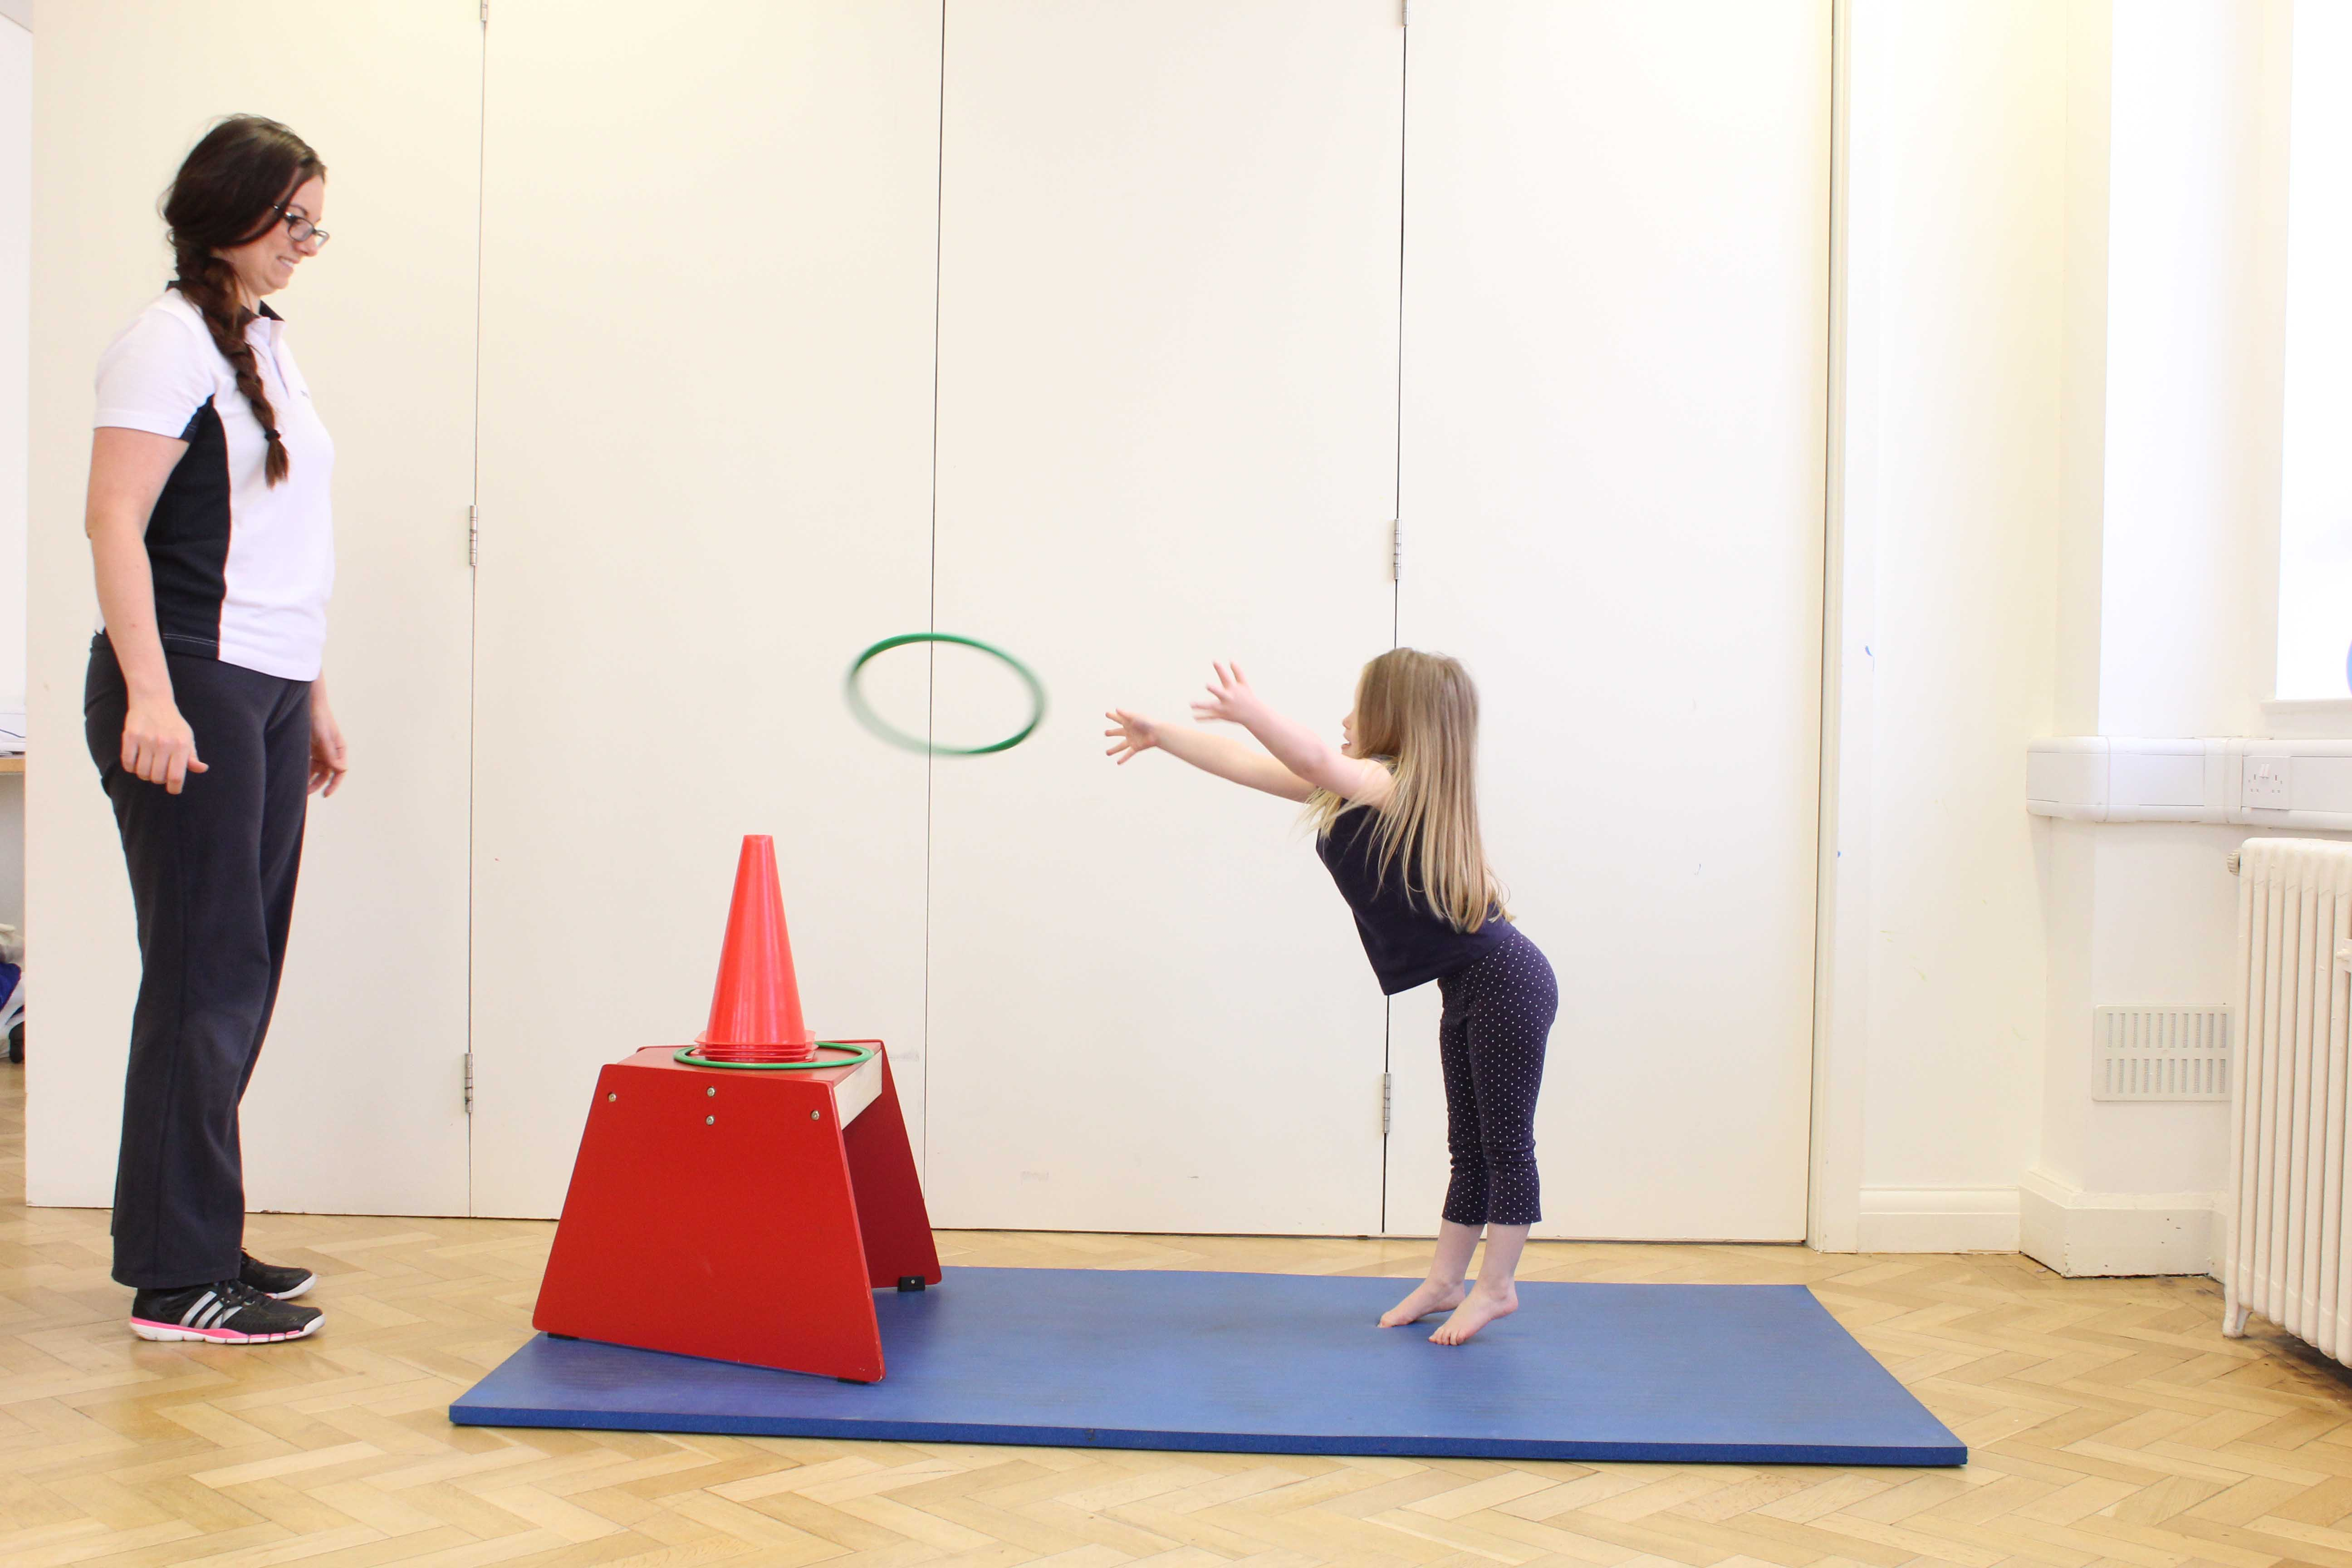 Functional rehabilitation through play activities overseen by a specialist physiotherapist